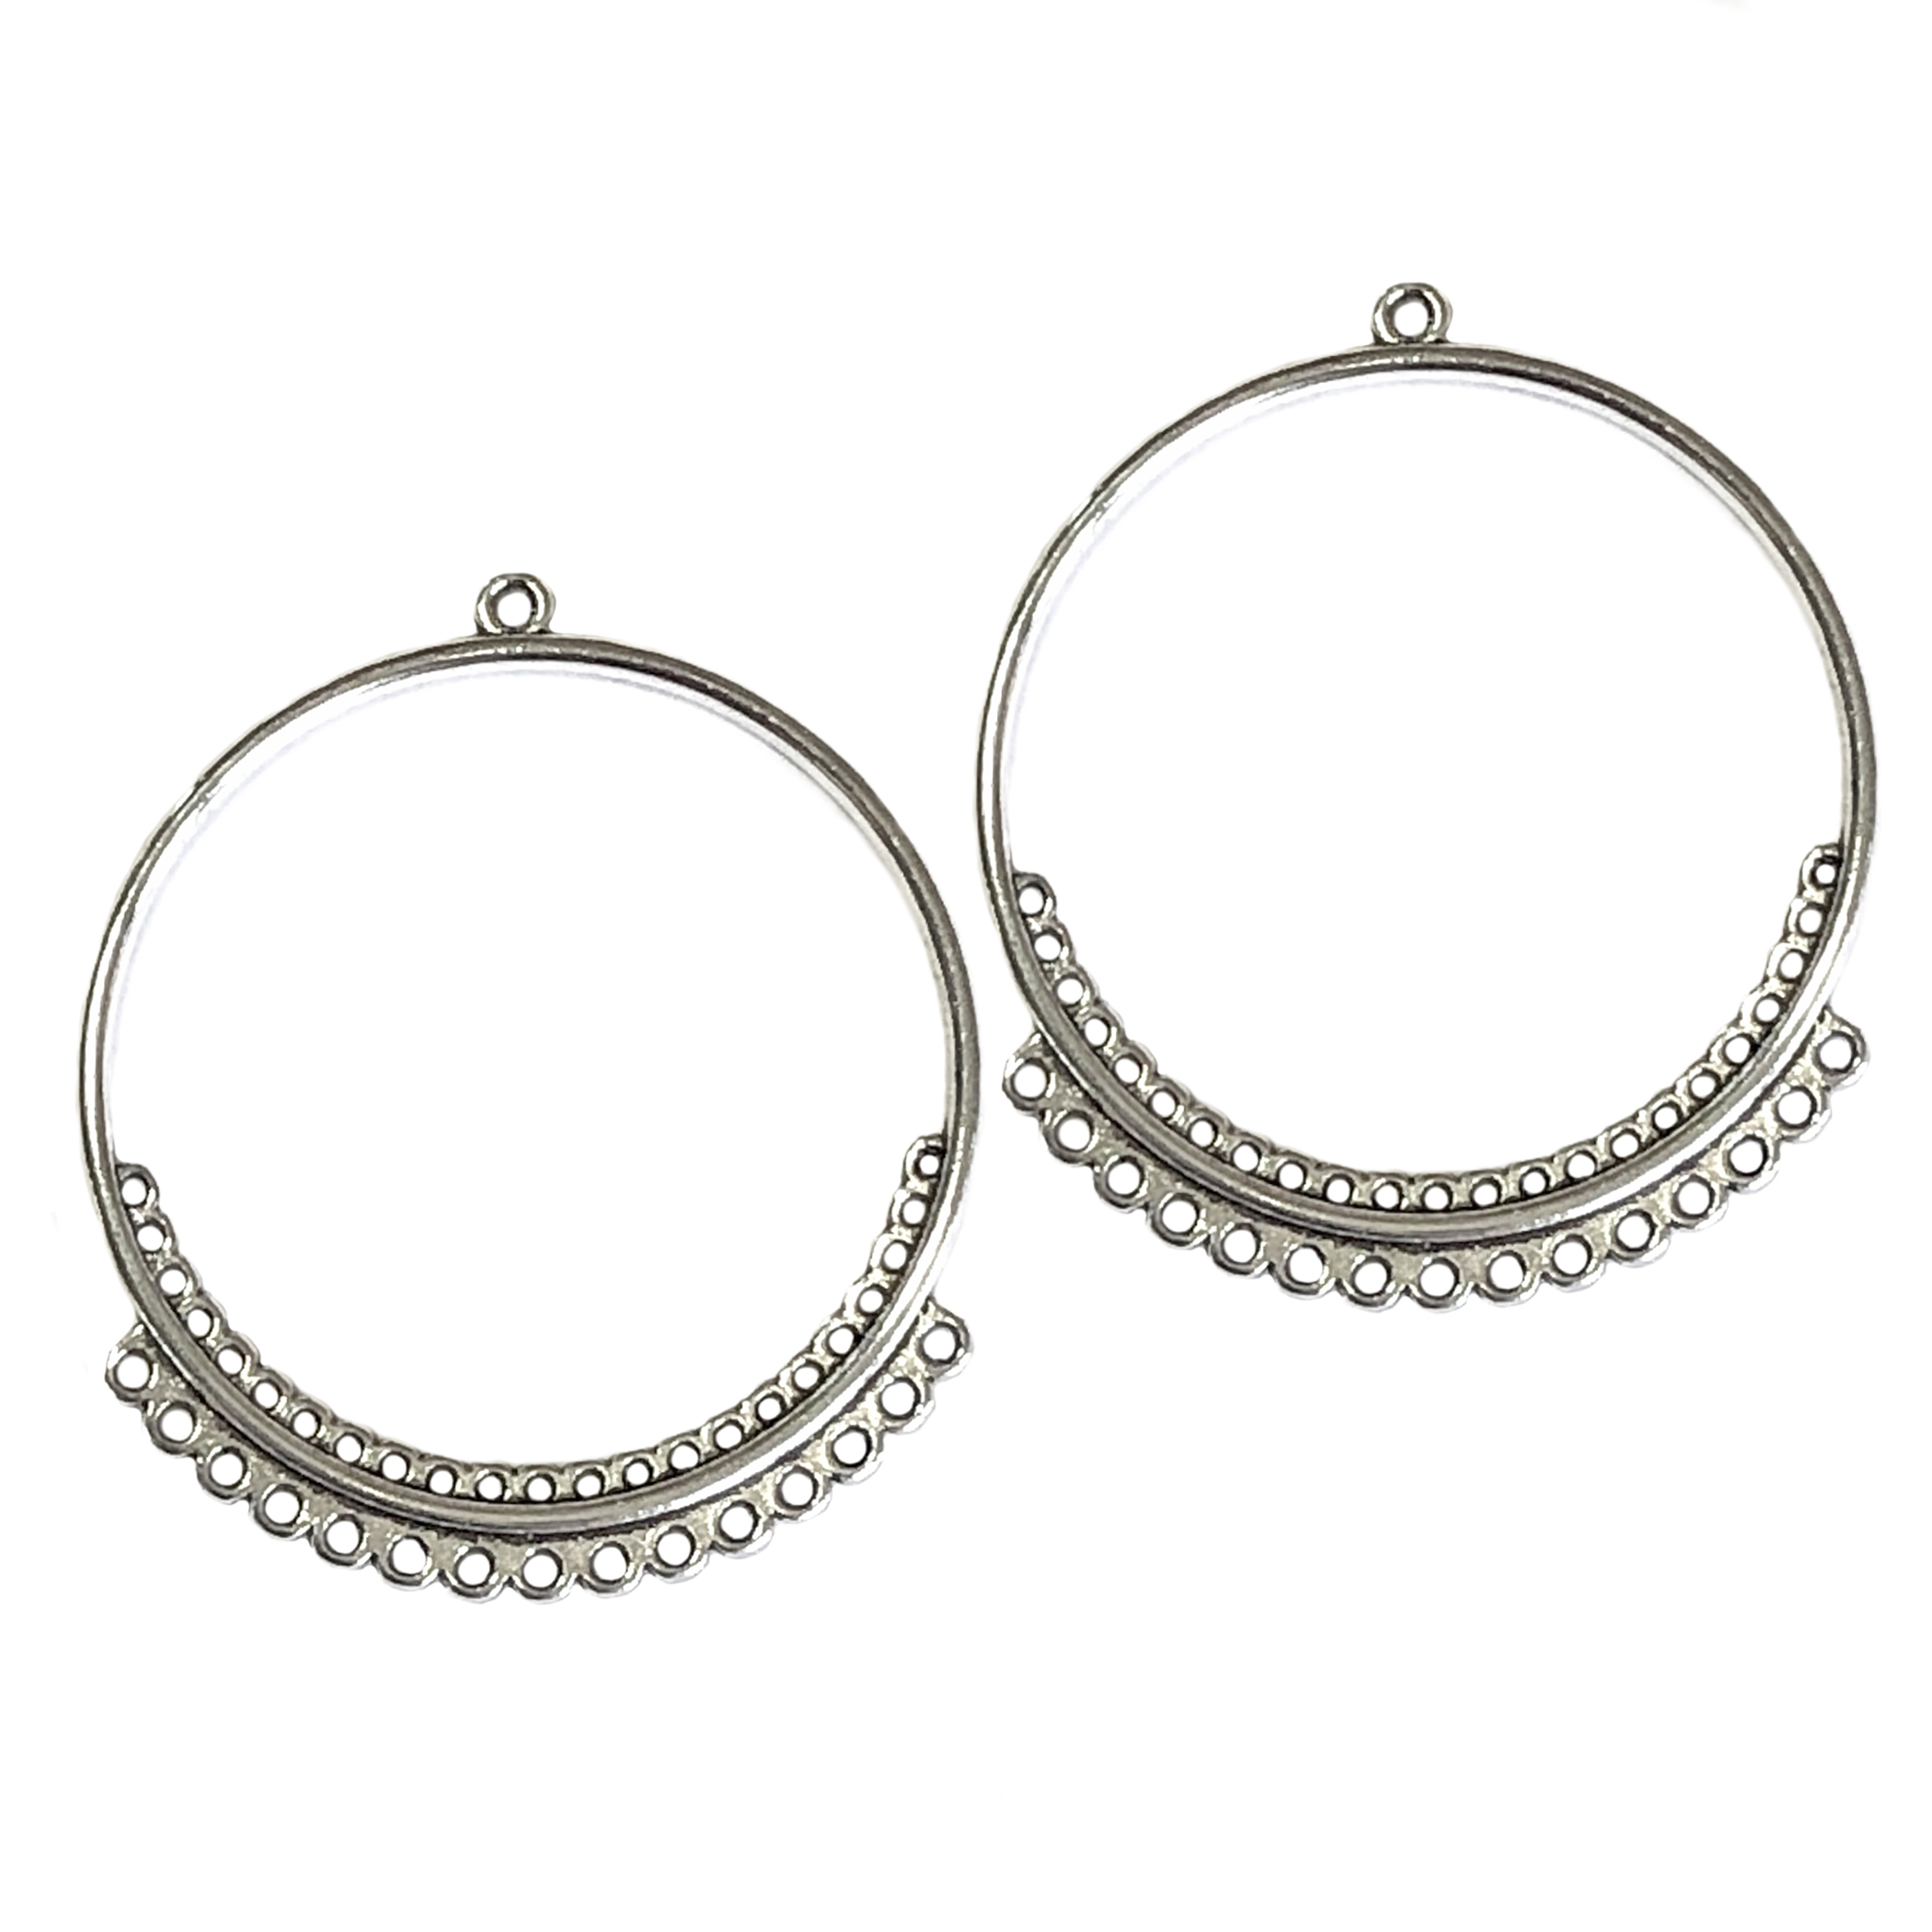 gypsy style ear drop, circle hoops, antique silver, earrings, gold, ear drops, circle design, silver ear drops, gypsy earrings, chandelier earrings, jewelry making, jewelry supplies, B'sue Boutiques, ear drops, 40x35mm, jewelry earrings, 0317